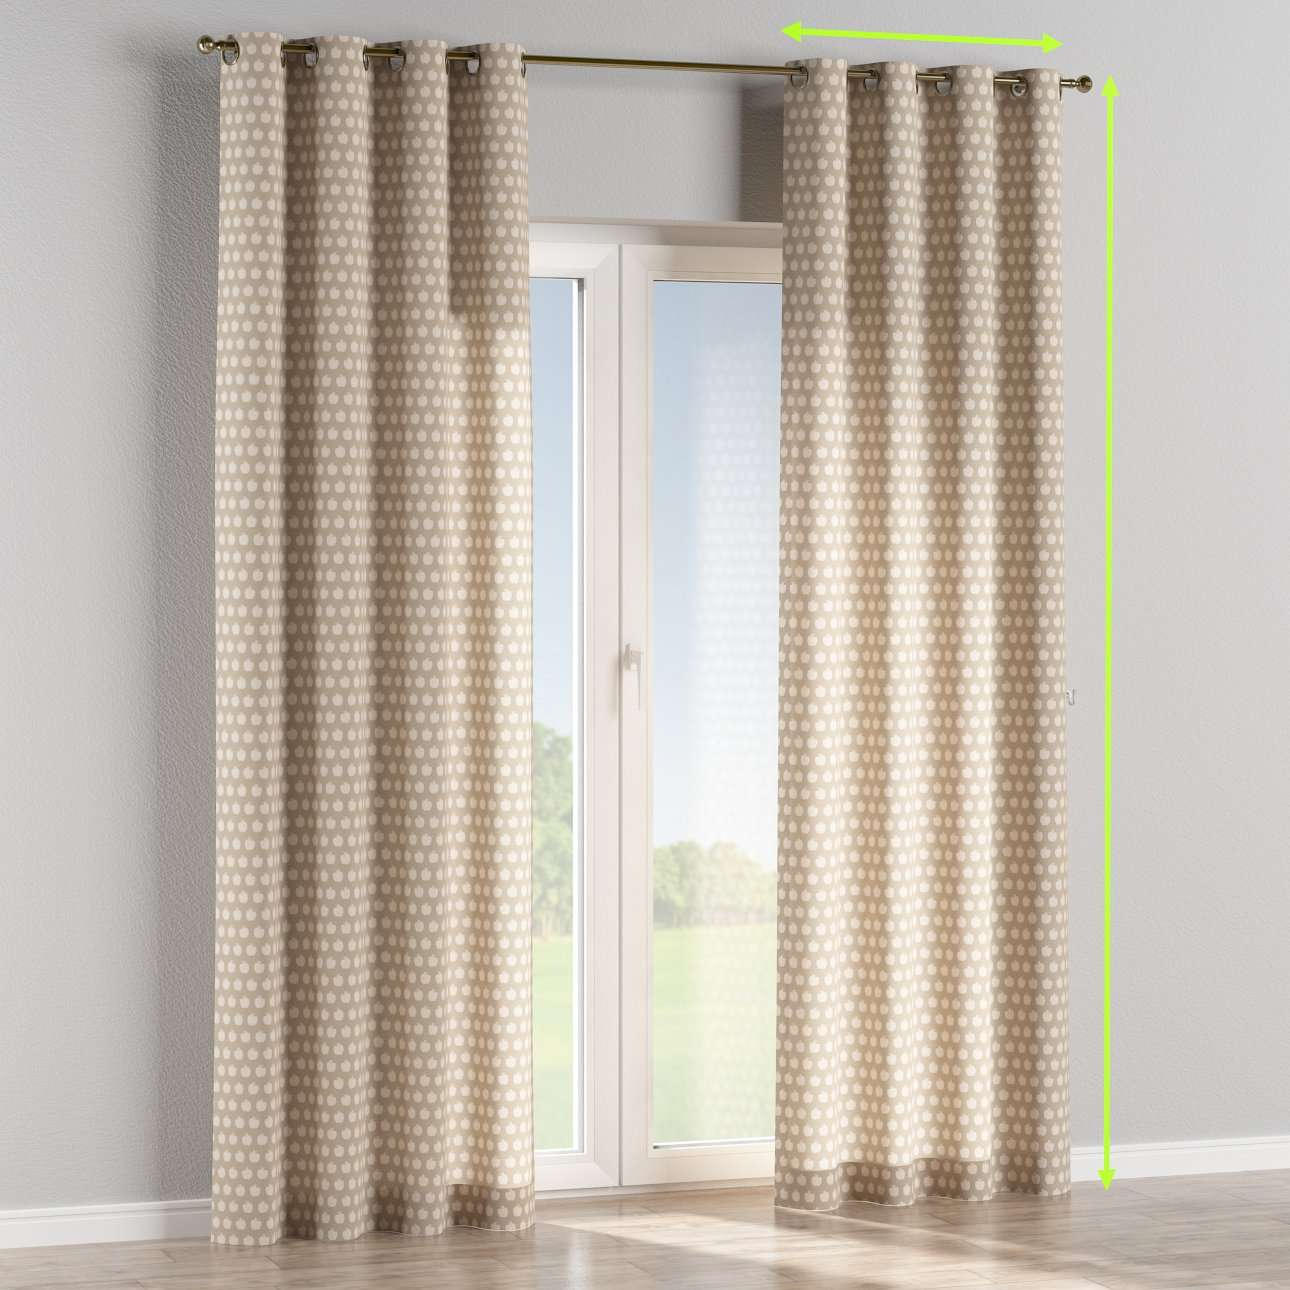 Eyelet curtains in collection Flowers, fabric: 140-55